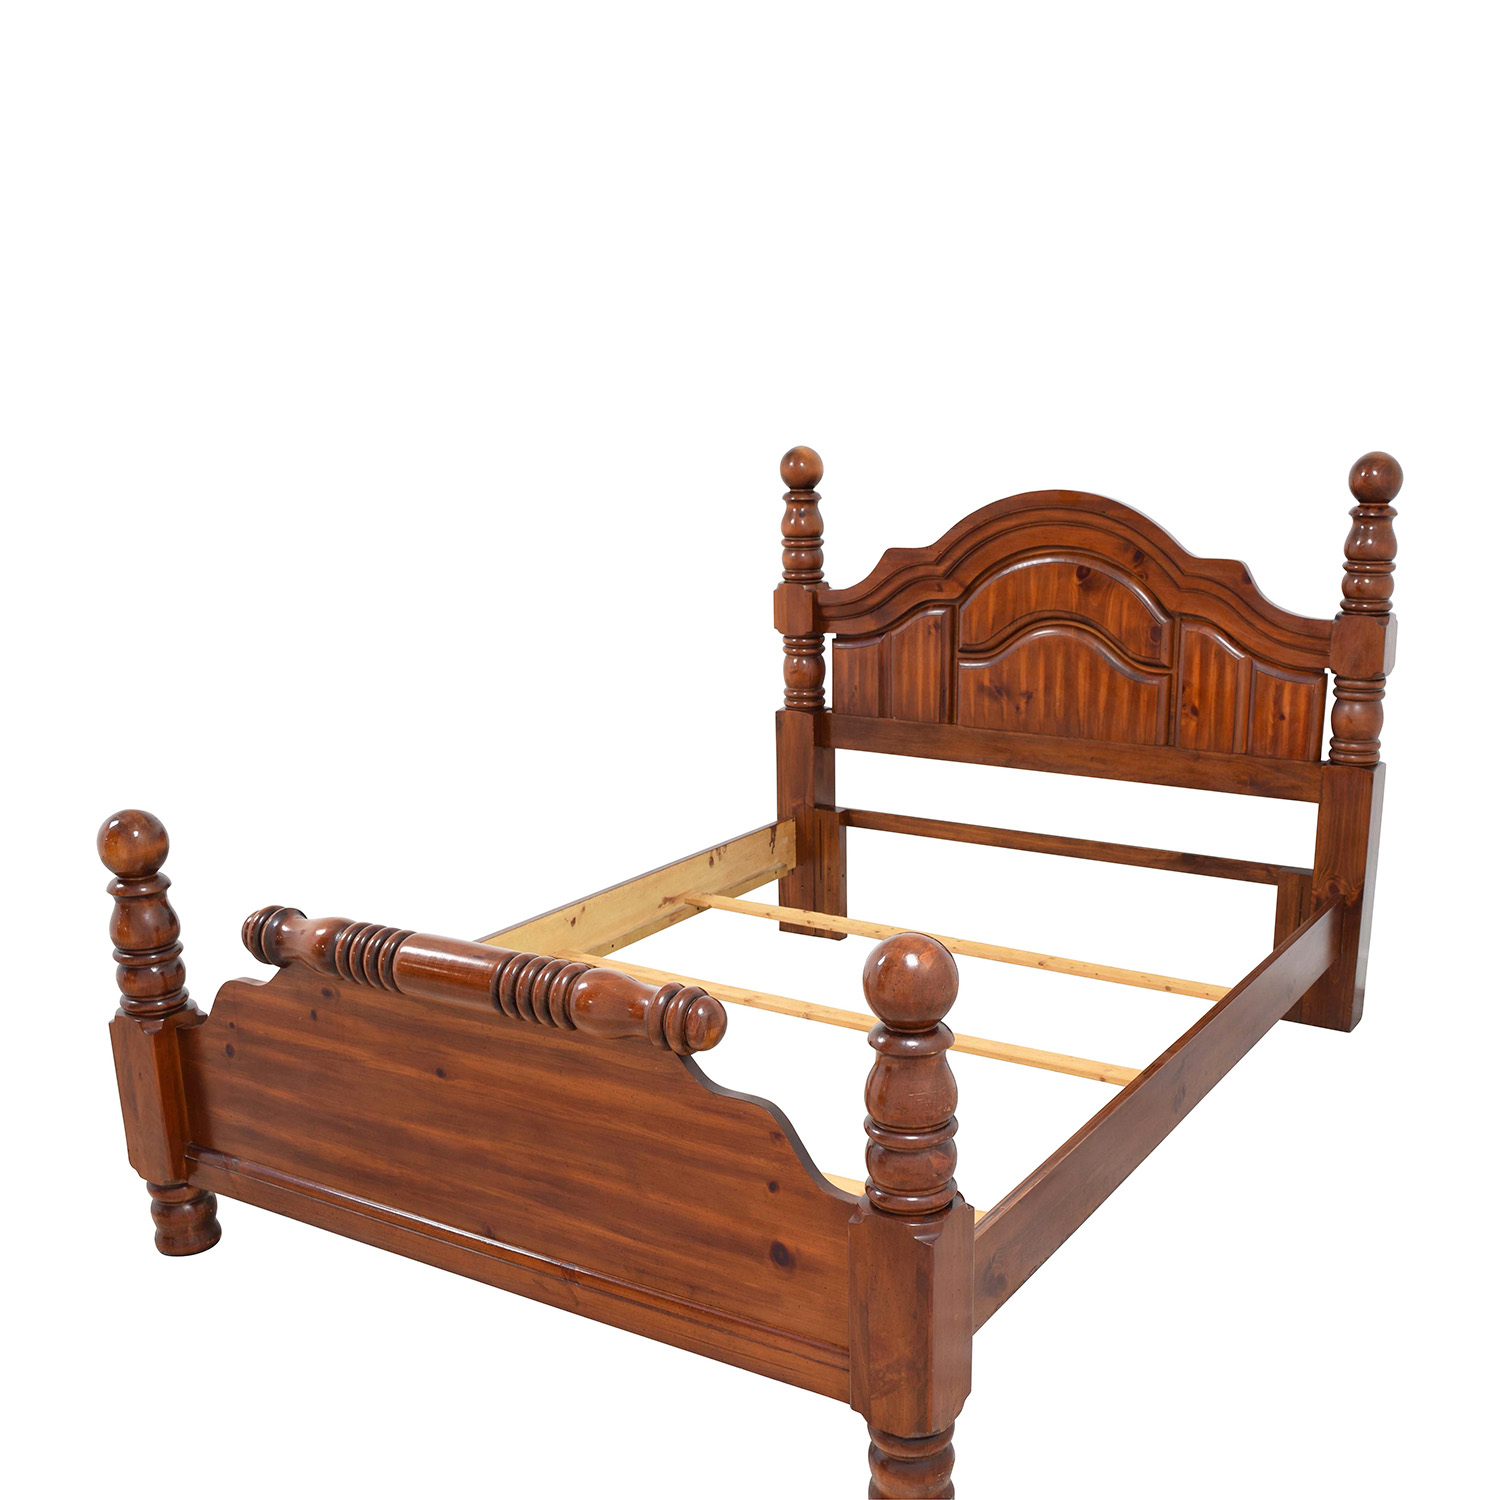 Wood Four Poster Beds 90 Off Wood Mini Four Poster Queen Bed Frame Beds